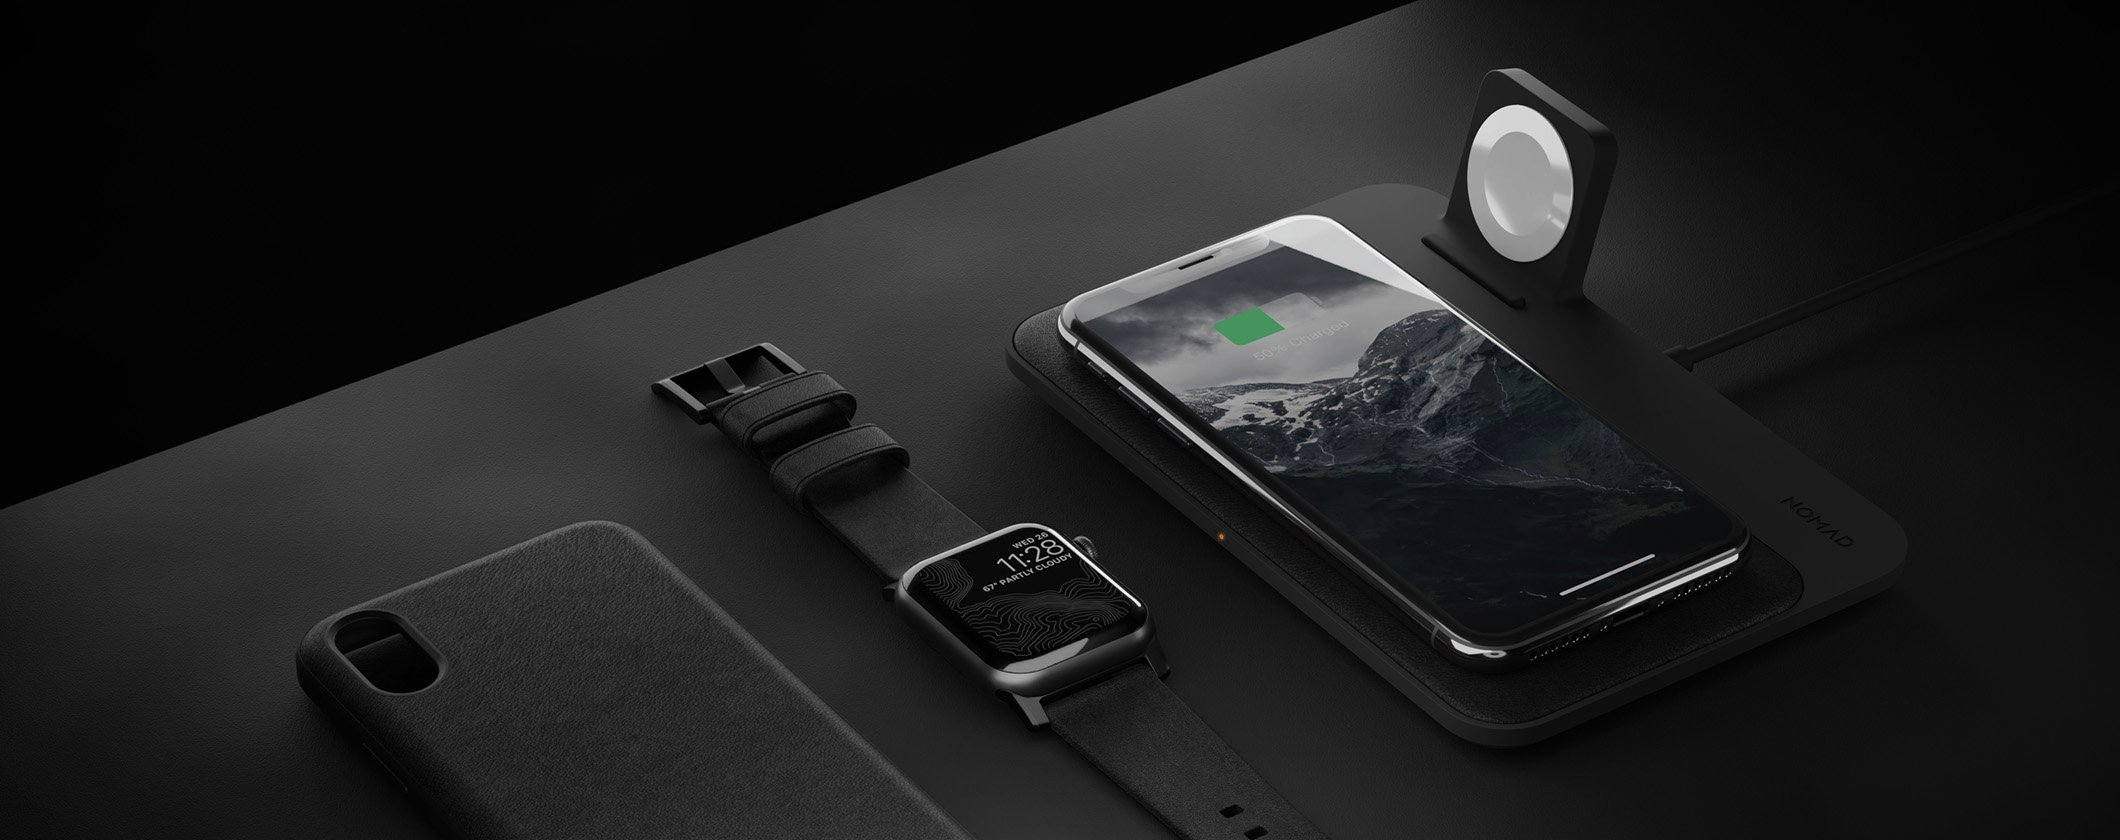 Base de carga inalámbrica Nomad Wireless - Edición Apple Watch